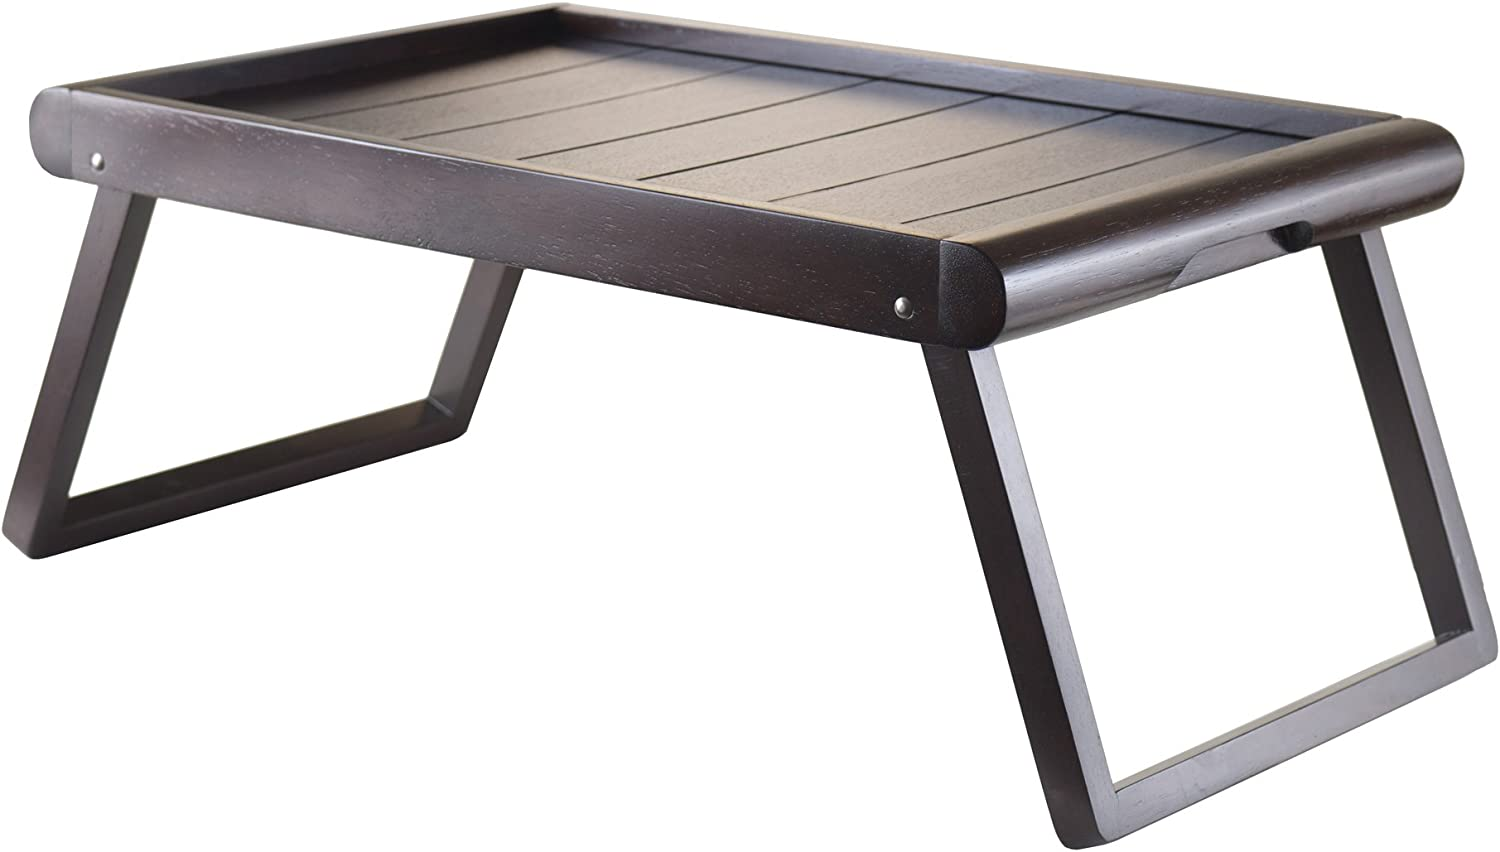 Wood Free shipping anywhere in the nation Elise Breakfast Bed U-Leg Tray Espresso Finish Max 86% OFF